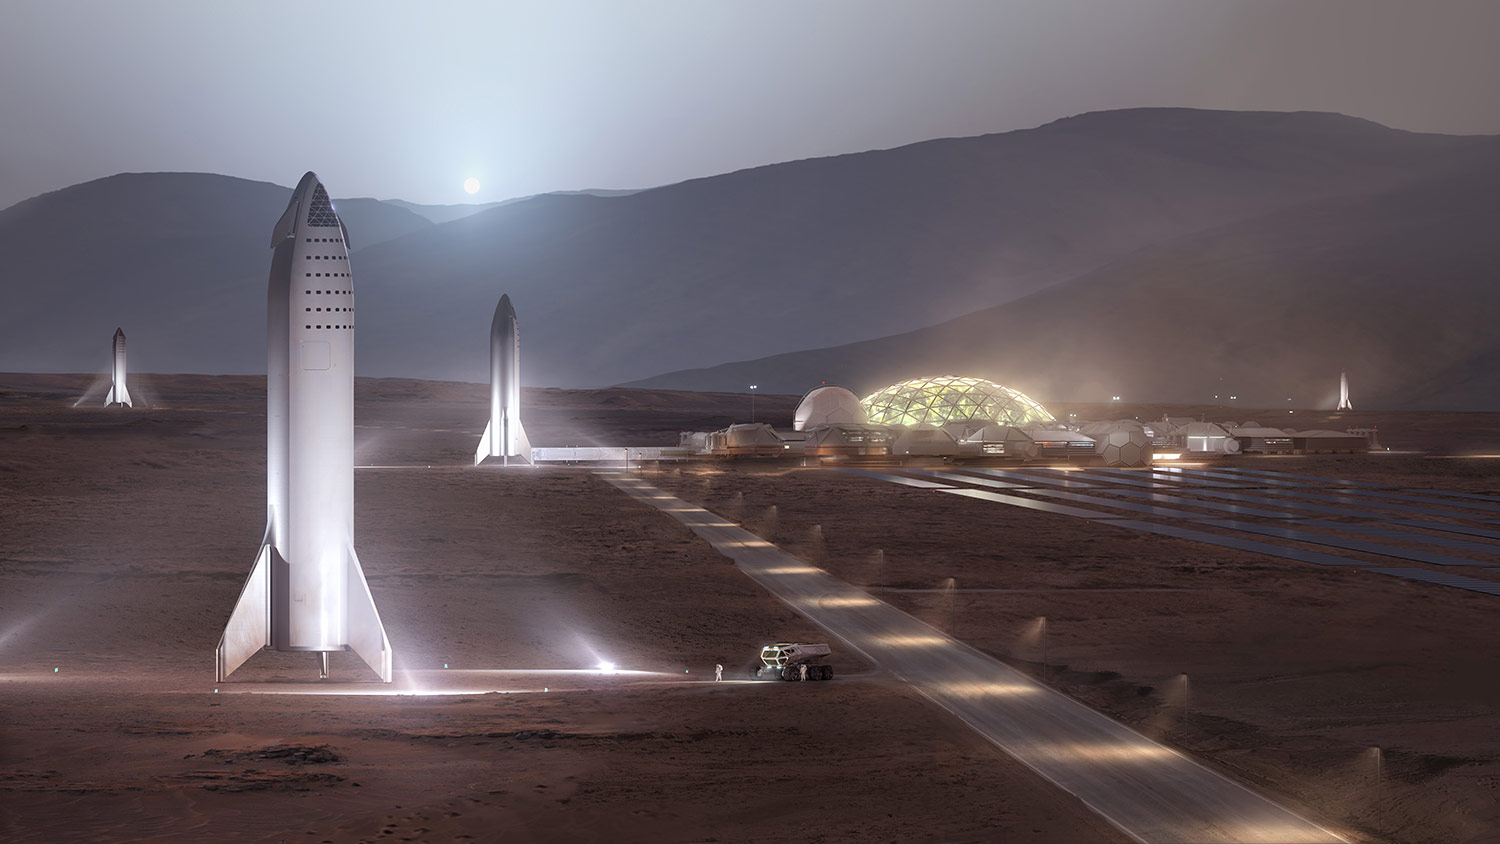 Elon Musk: First Mars City Will Take 1,000 Starships, 20 Years